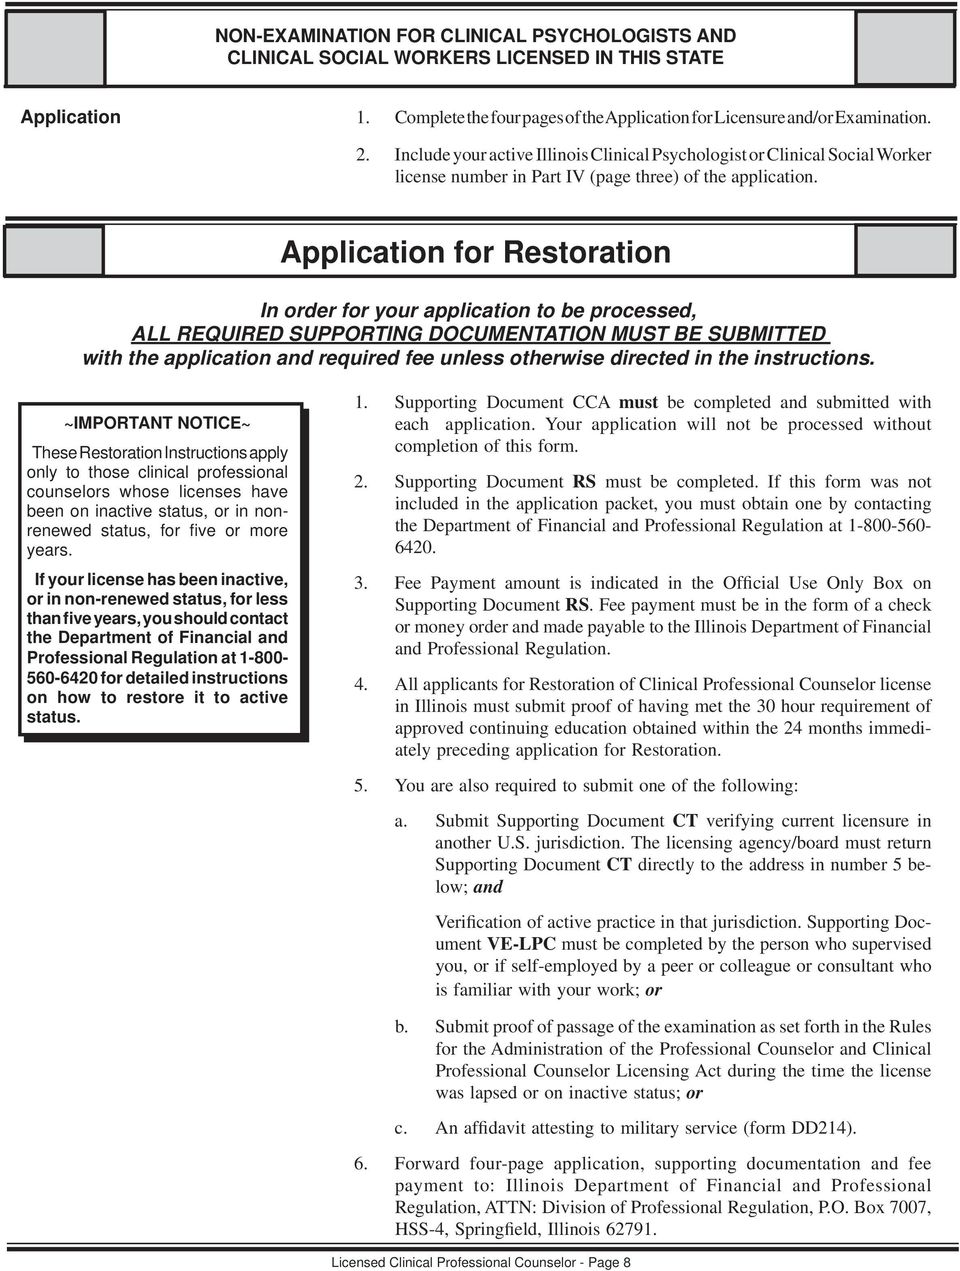 Application for Restoration In order for your application to be processed, ALL REQUIRED SUPPORTING DOCUMENTATION MUST BE SUBMITTED with the application and required fee unless otherwise directed in